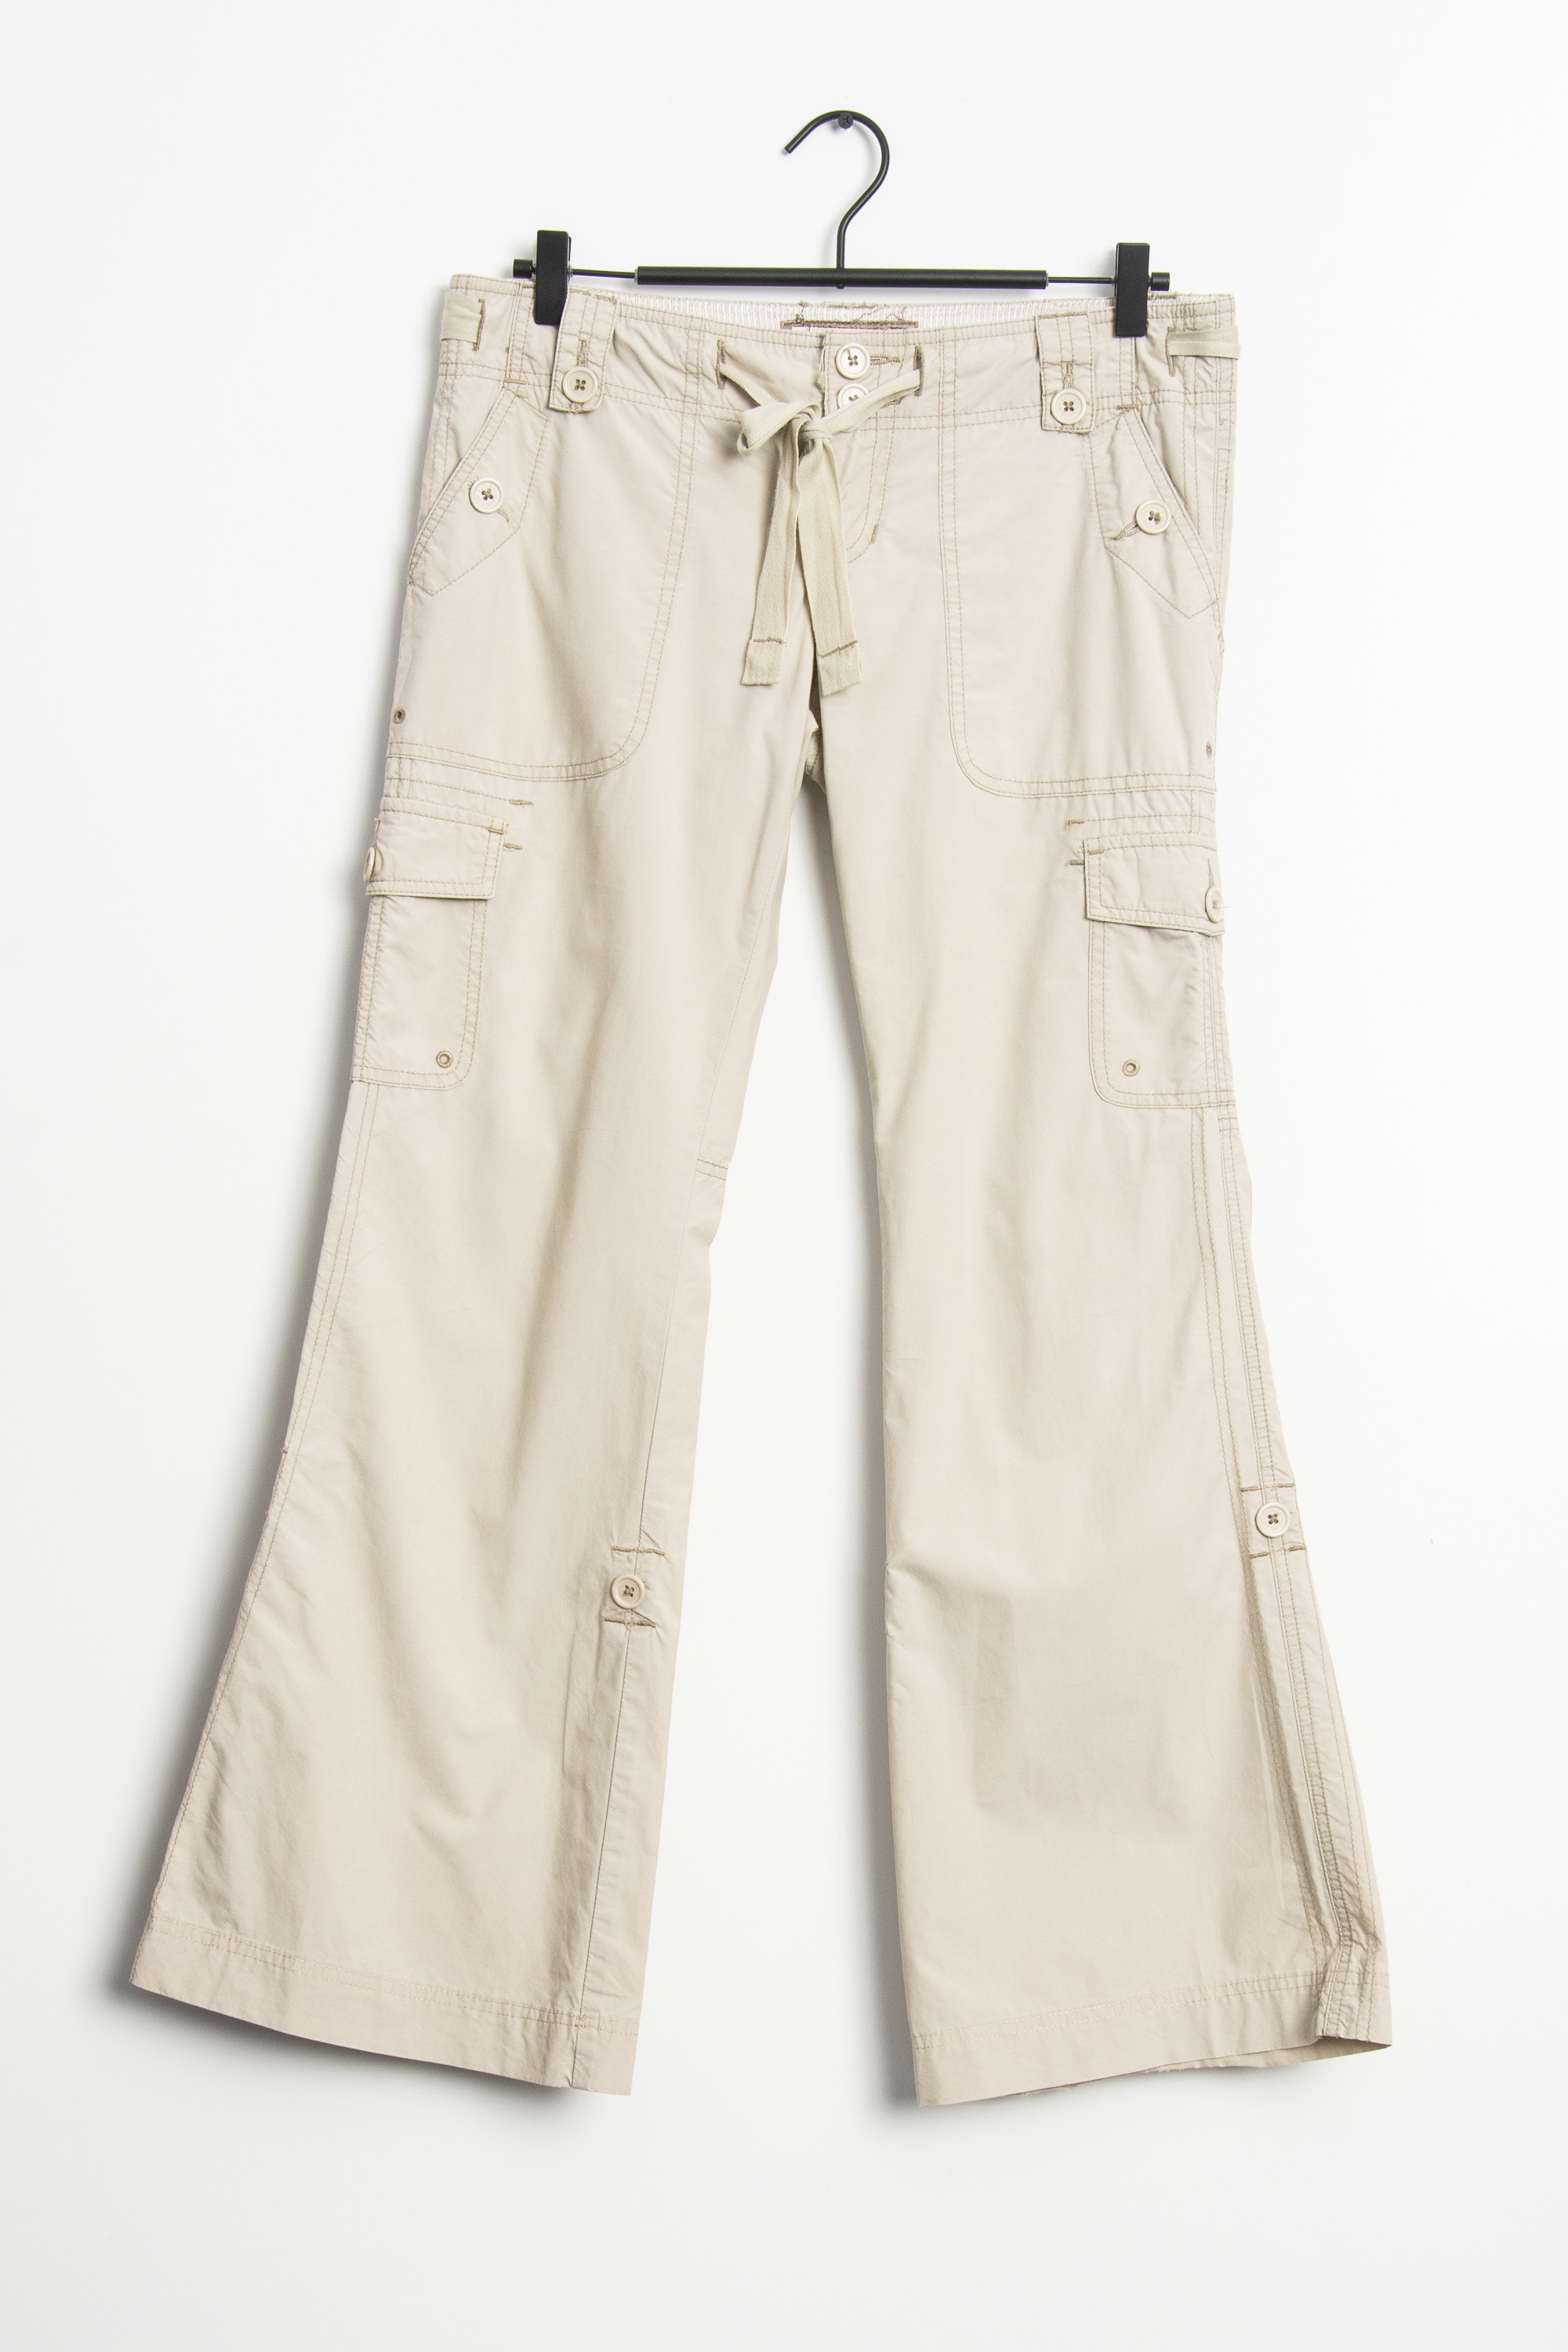 Abercrombie & Fitch Stoffhose Beige Gr.M